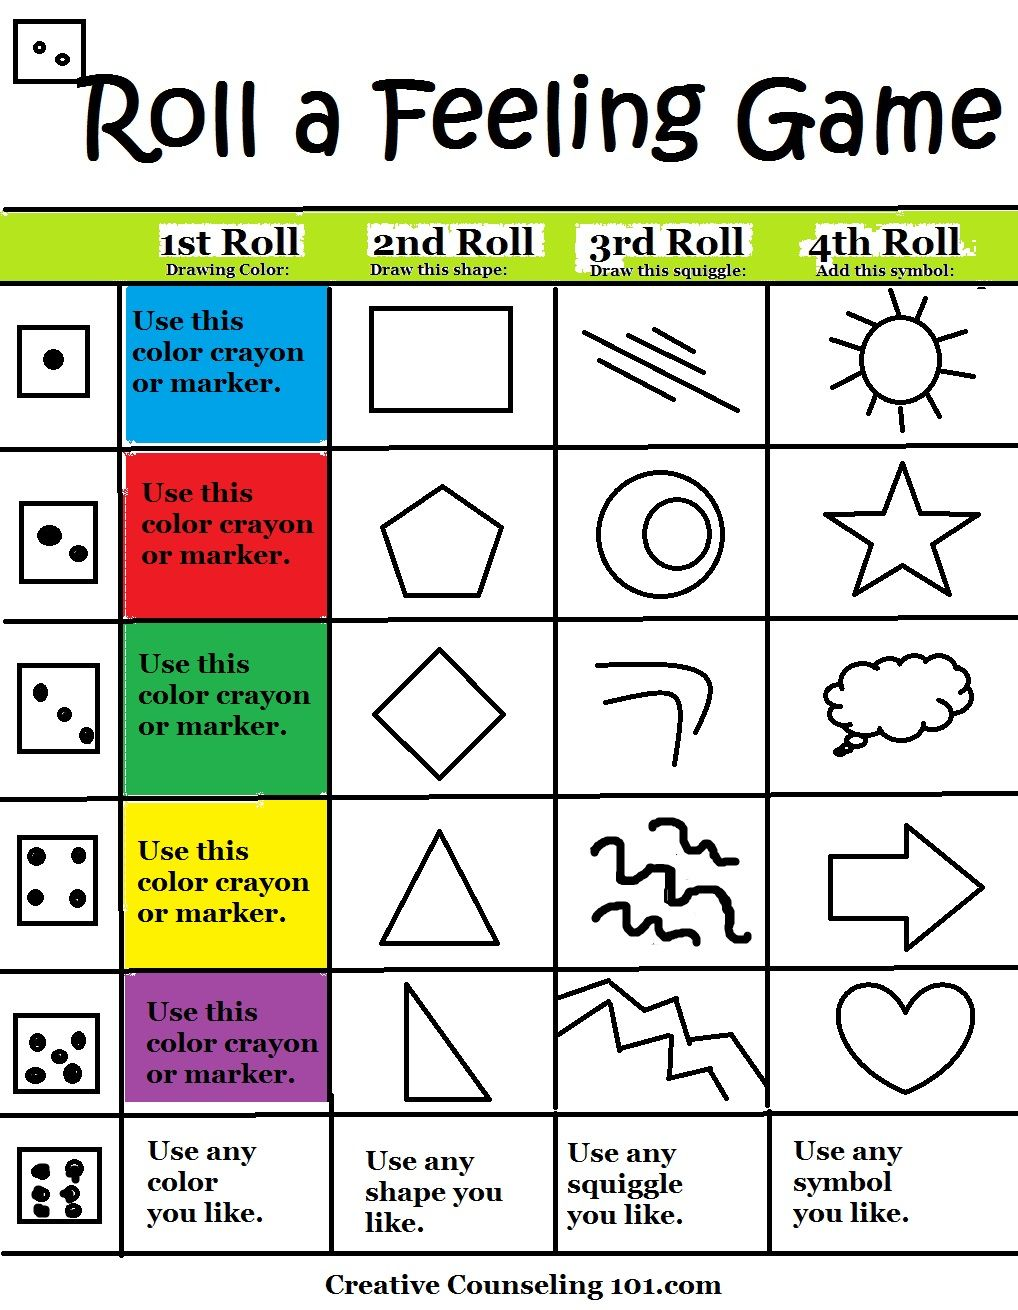 Try this fun Art Therapy RollAFeelings Game – Mental Health Group Worksheets